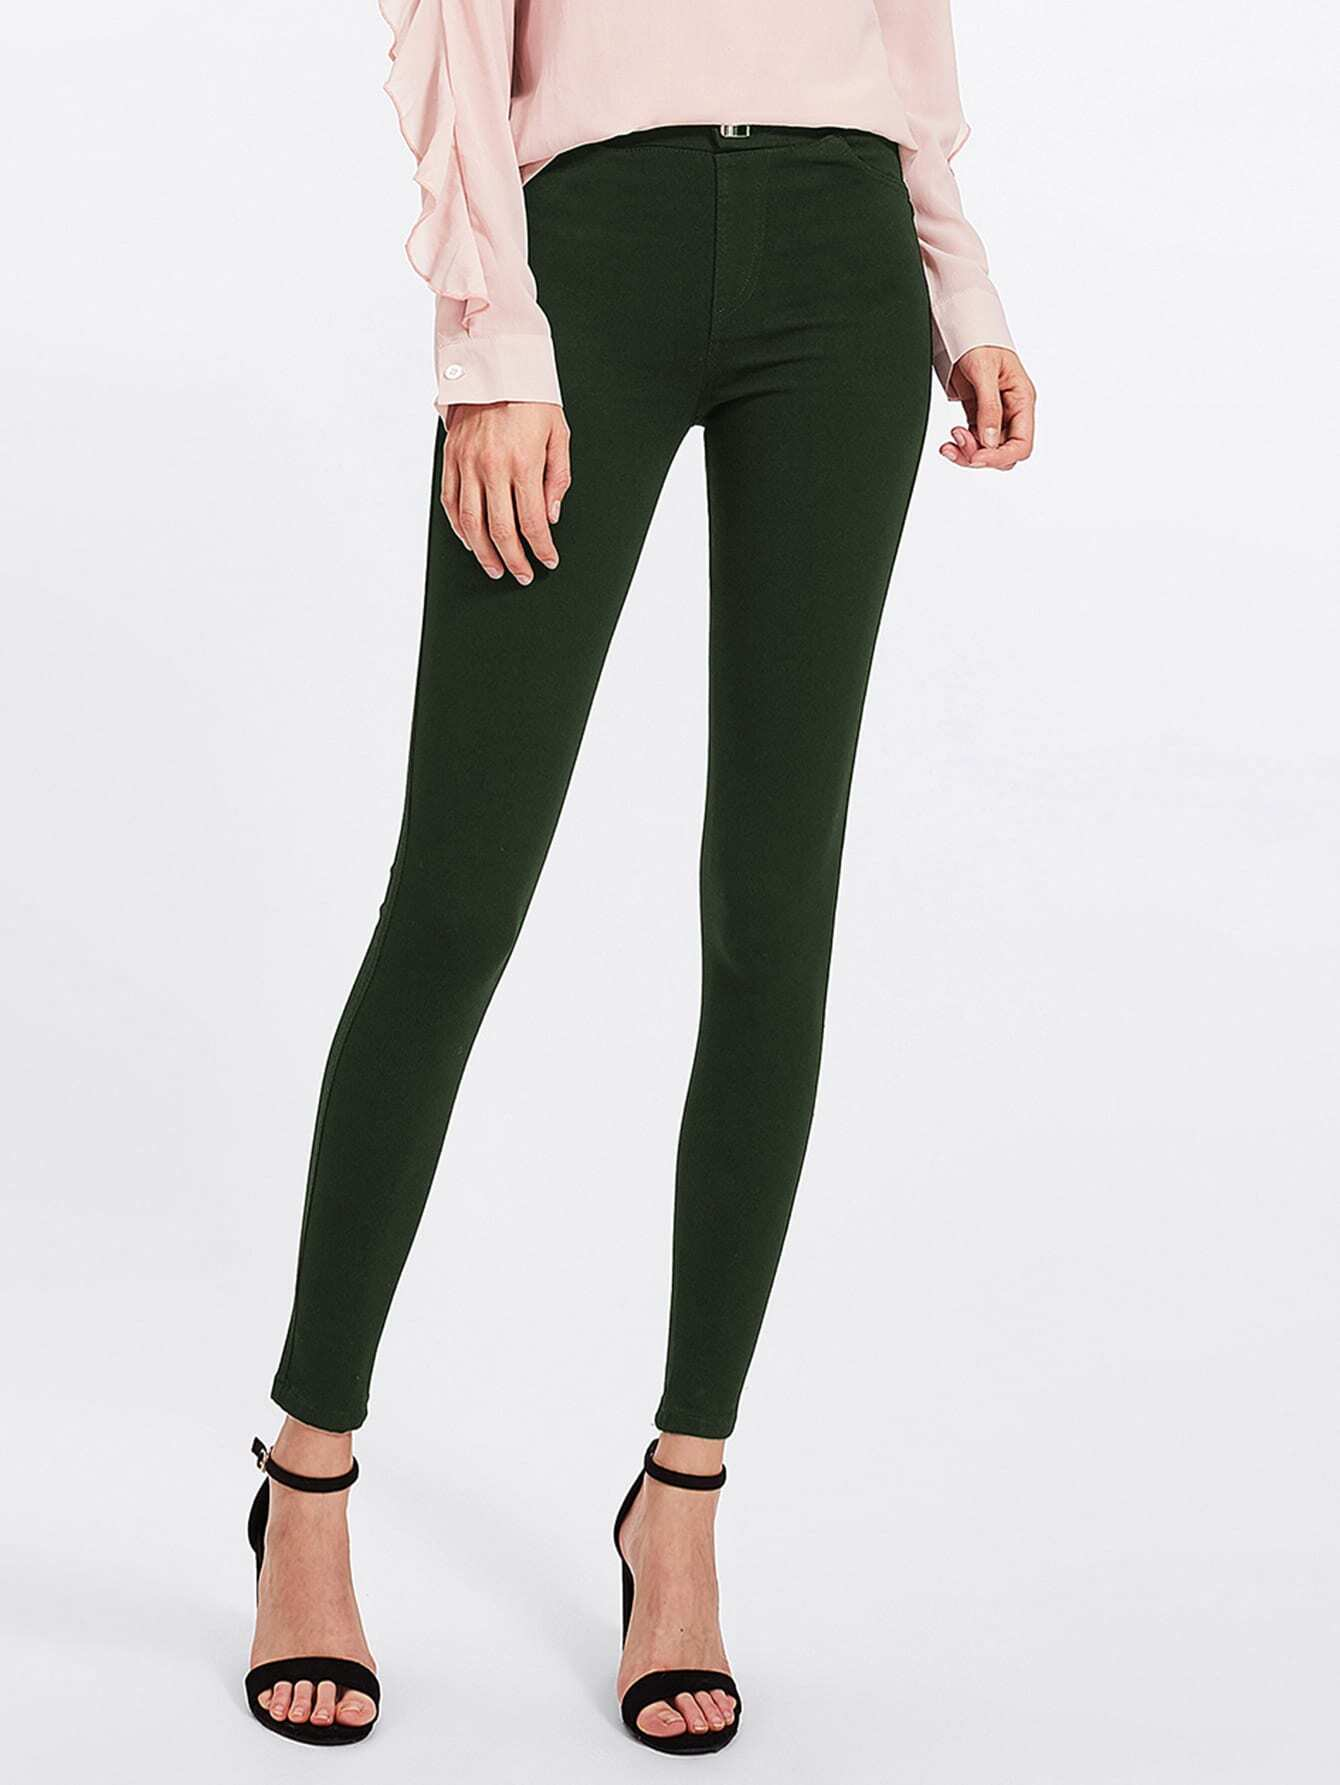 Image of Army Green Skinny Jeans